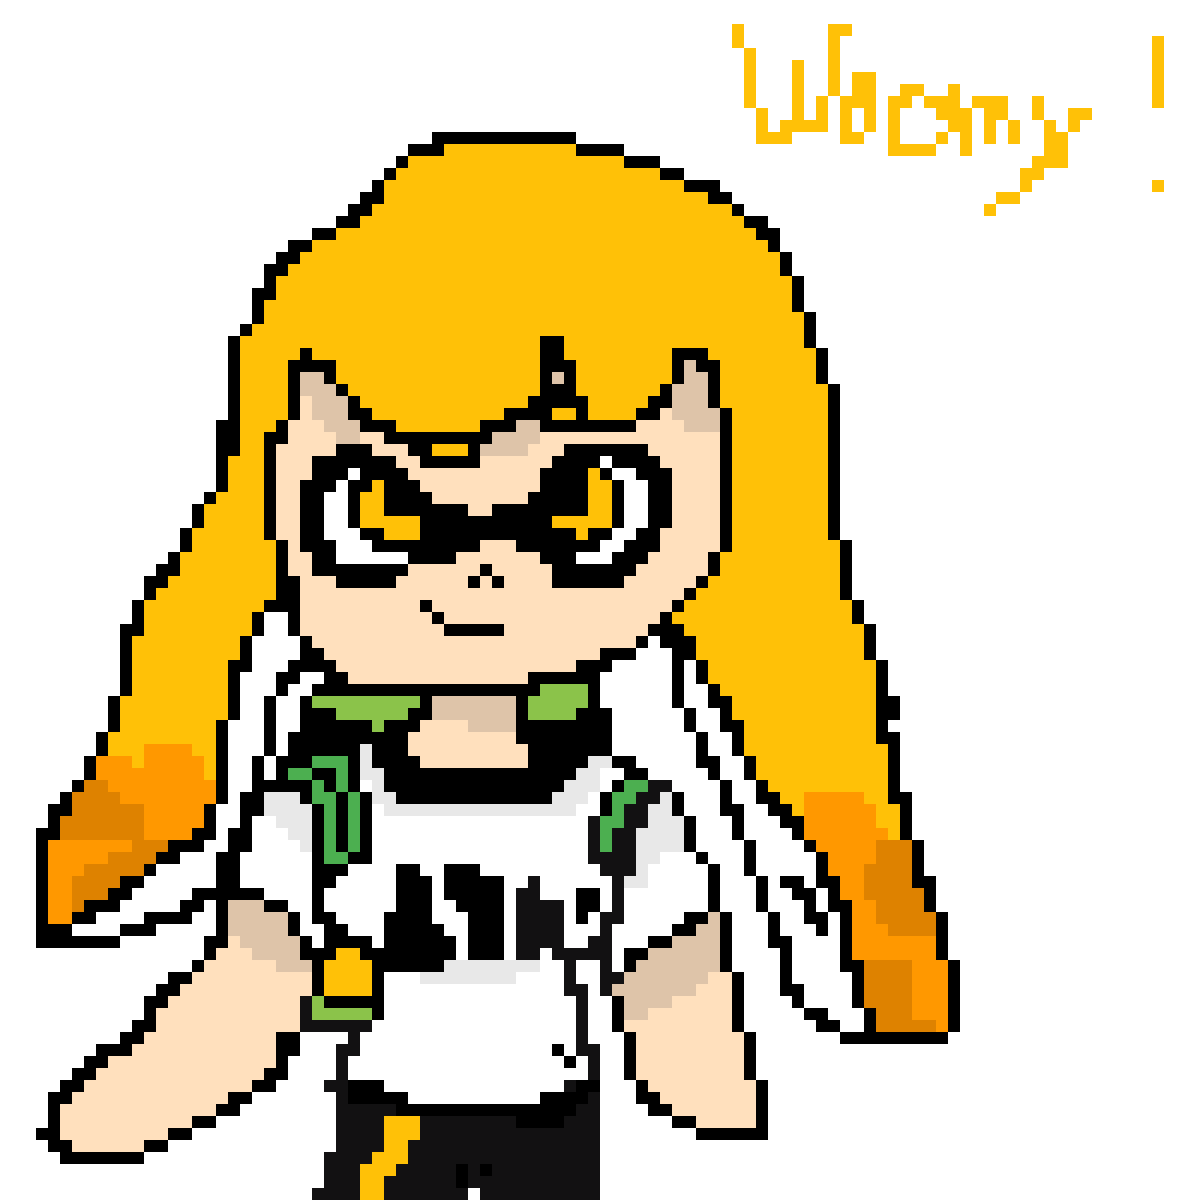 Woomy by OctoLeaf